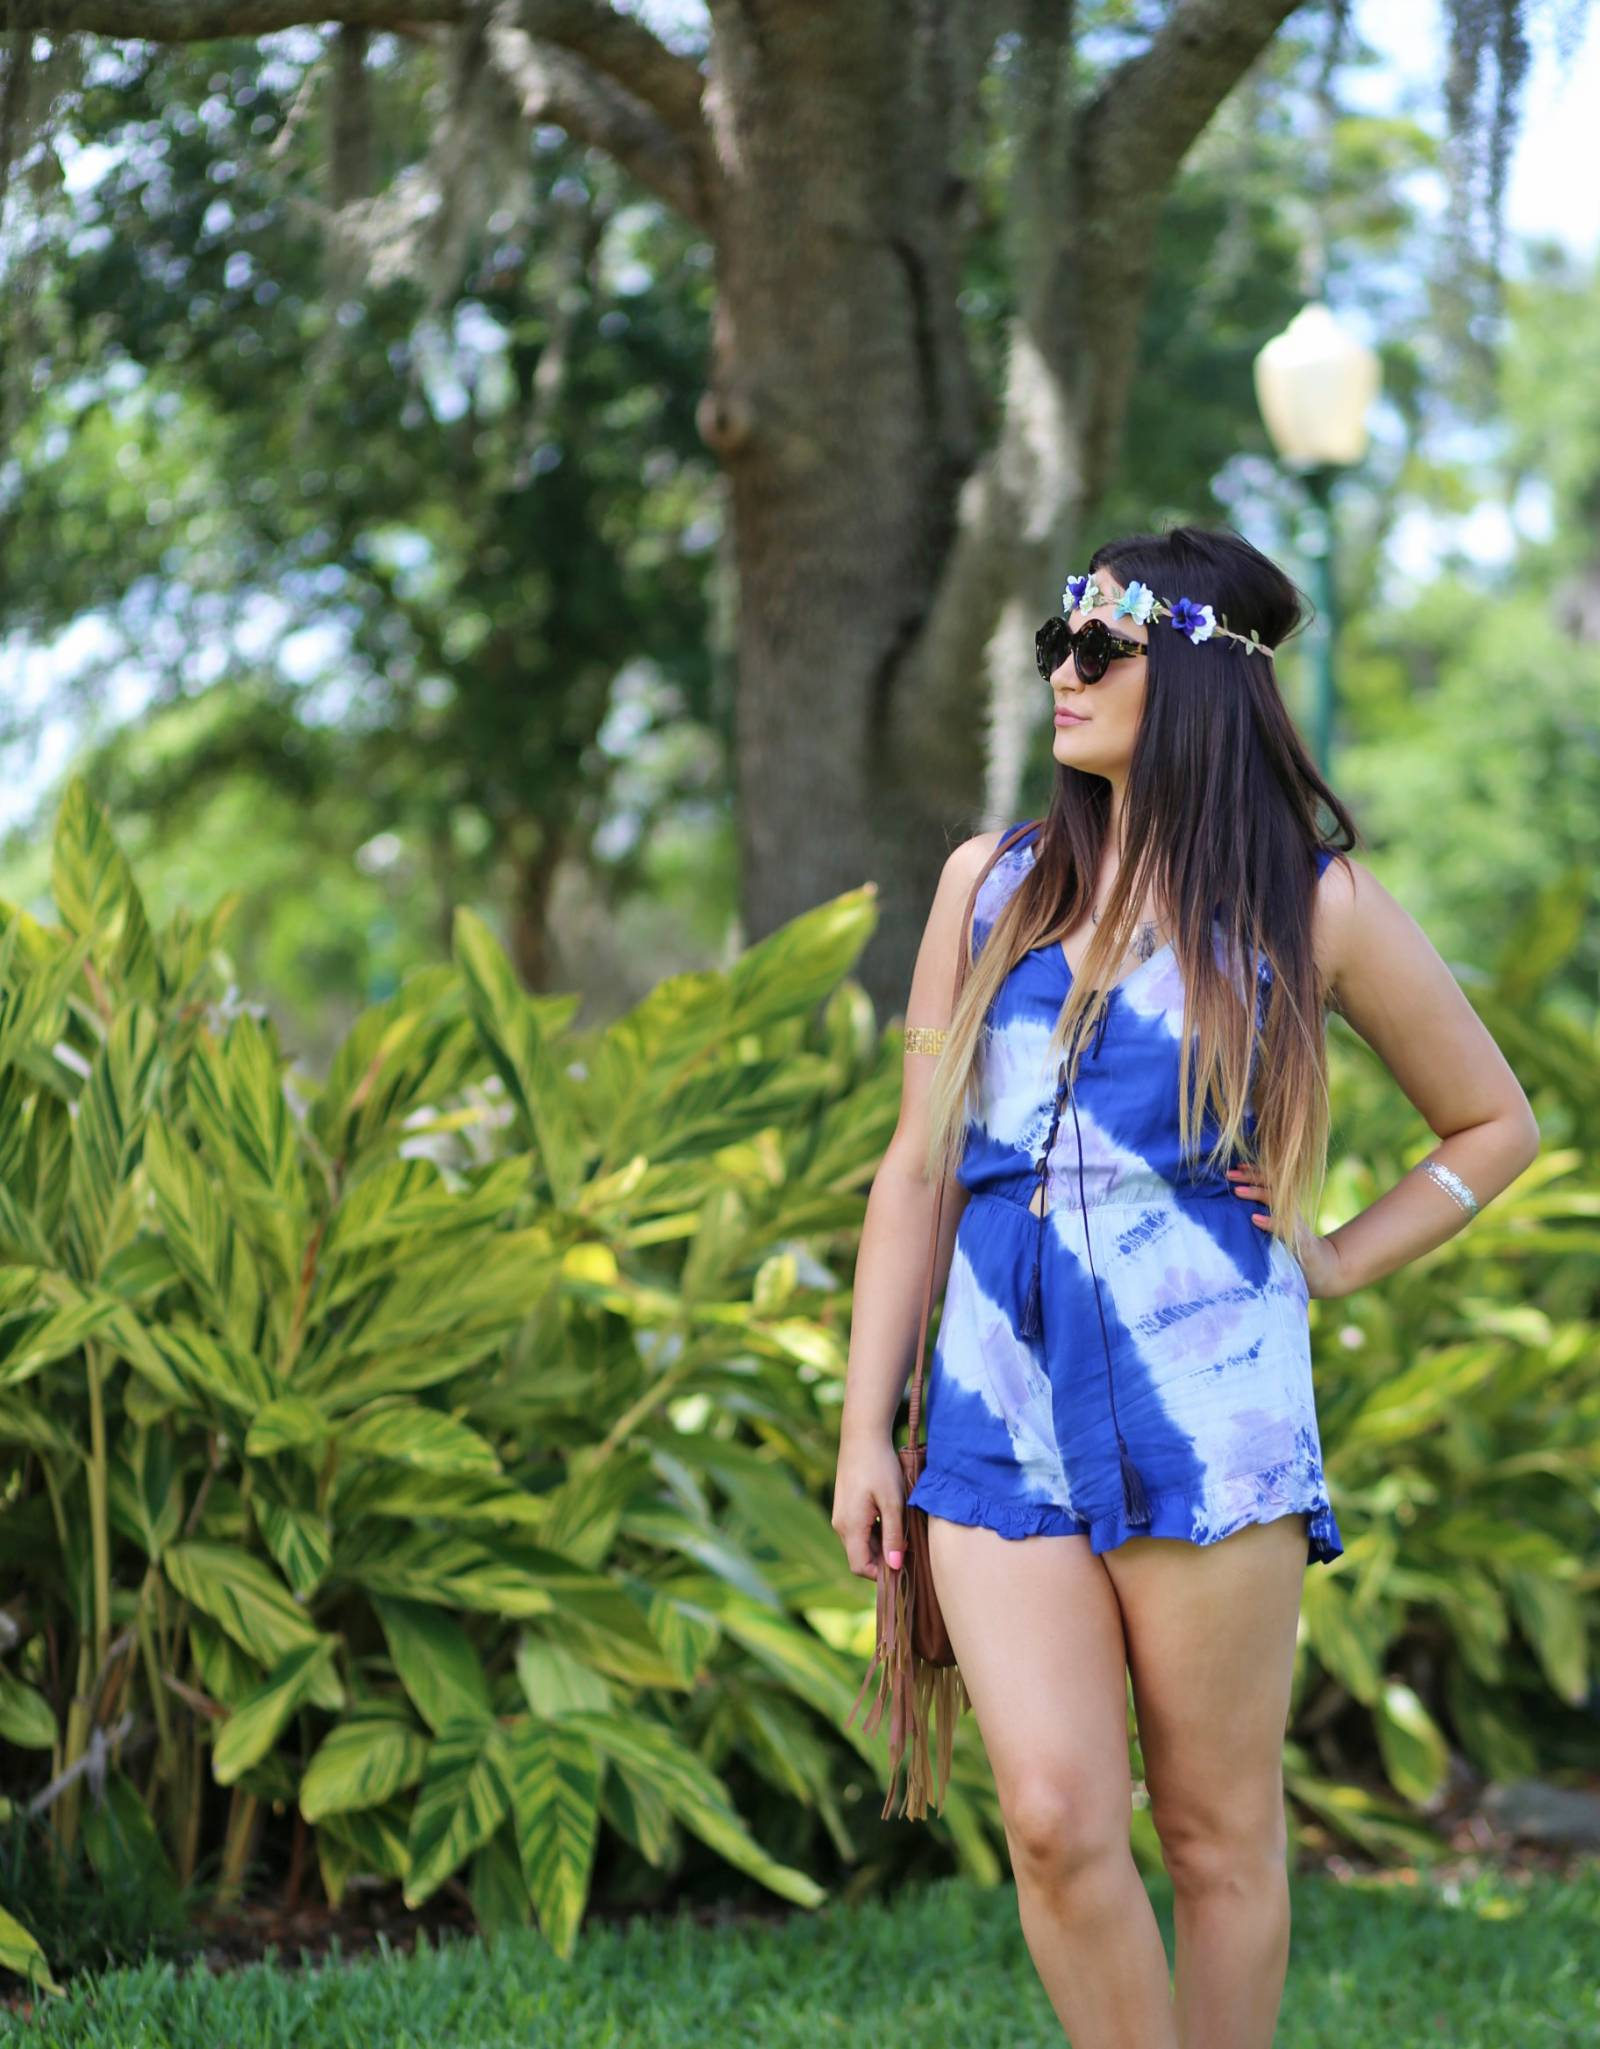 bohemian inspired tie dye romper and floral halo | coachella dreaming inspired fashion trends | festival fashion | Coachella | beauty blogger mash elle